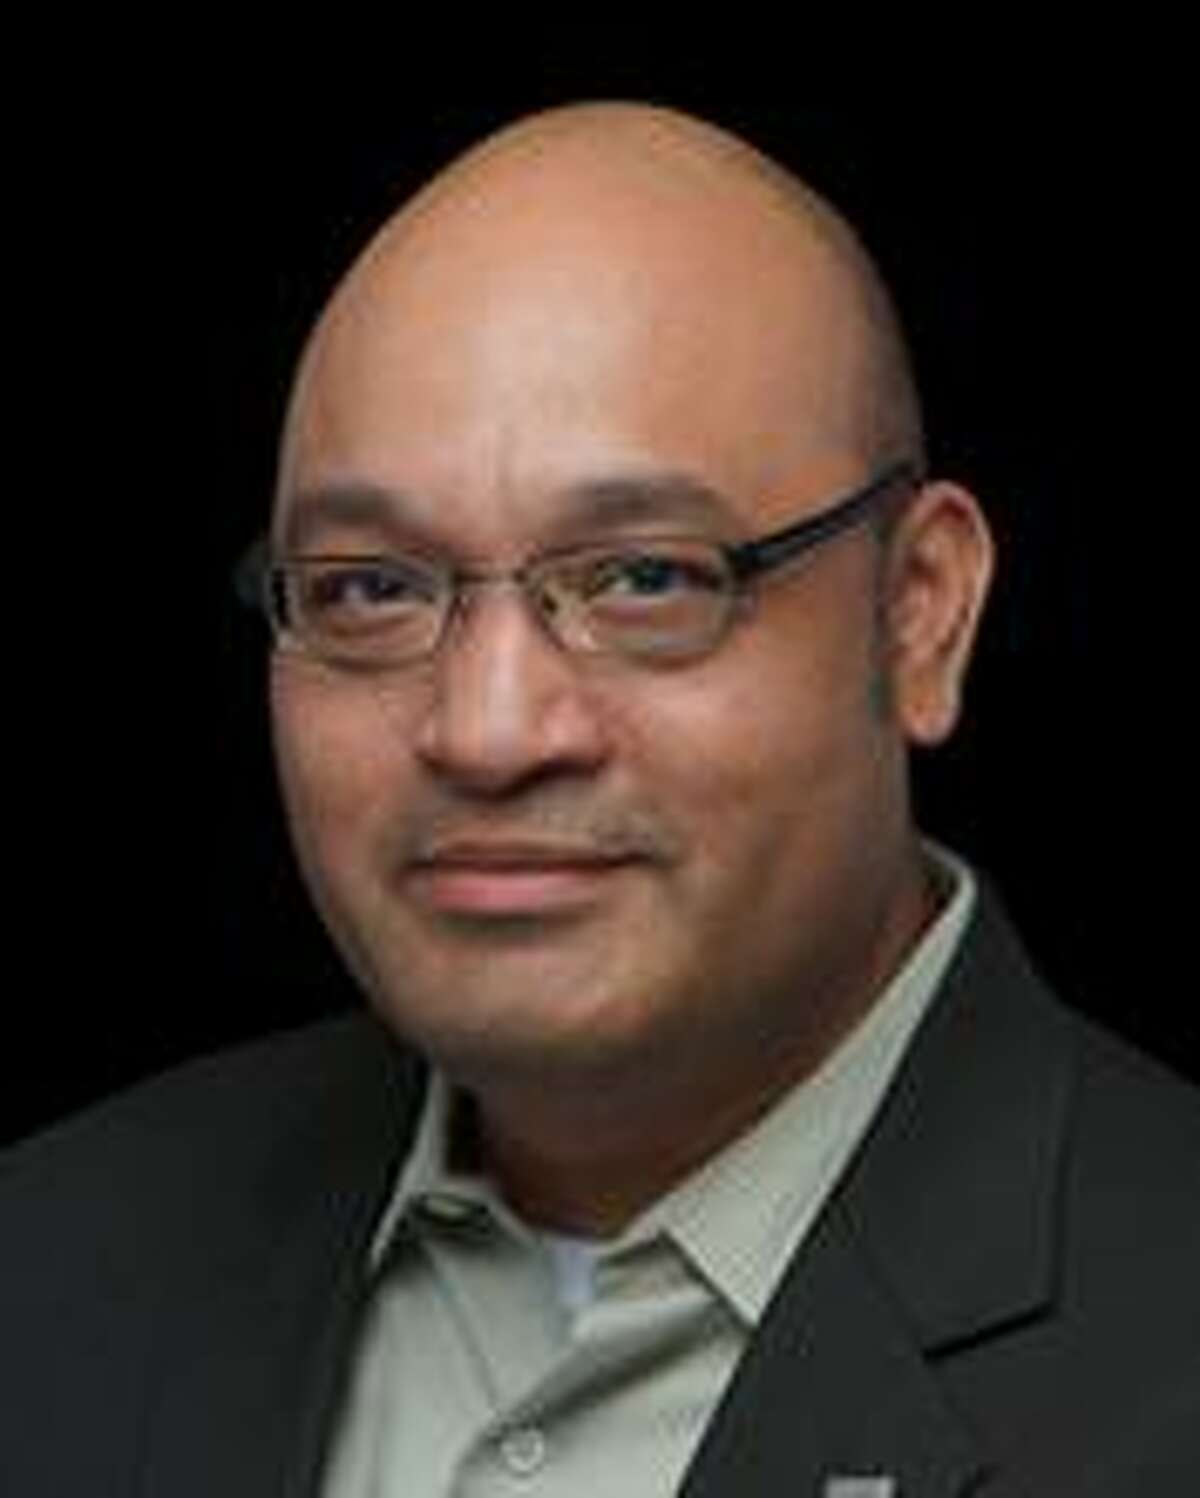 Jose A. Macias Jr., 50, a former Judson ISD board president, is running against Evette Livingston for the vacant District 4 seat on the board.